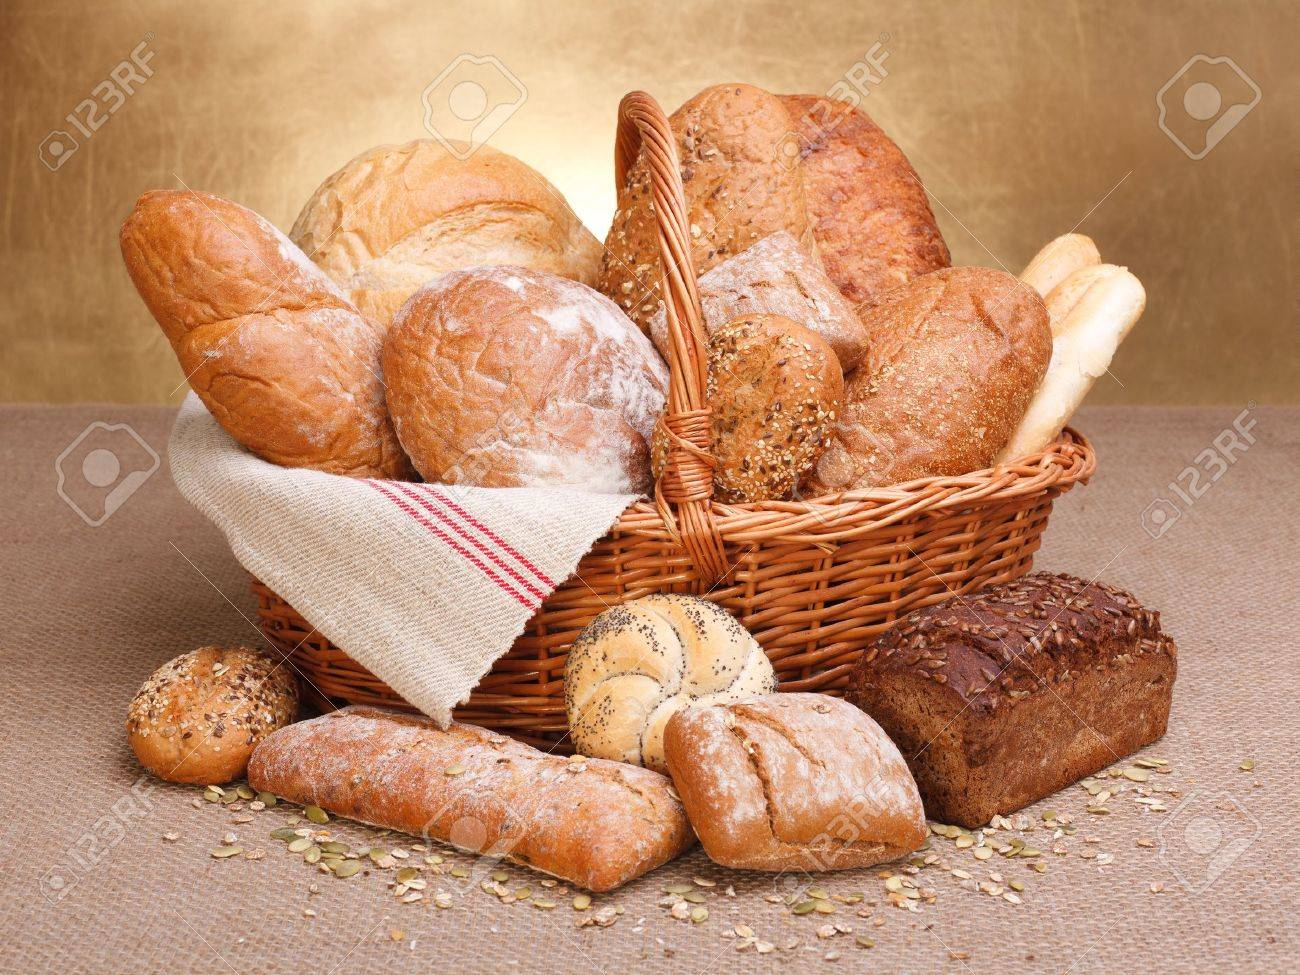 Various breads in basket on canvas tablecloth - 16059613